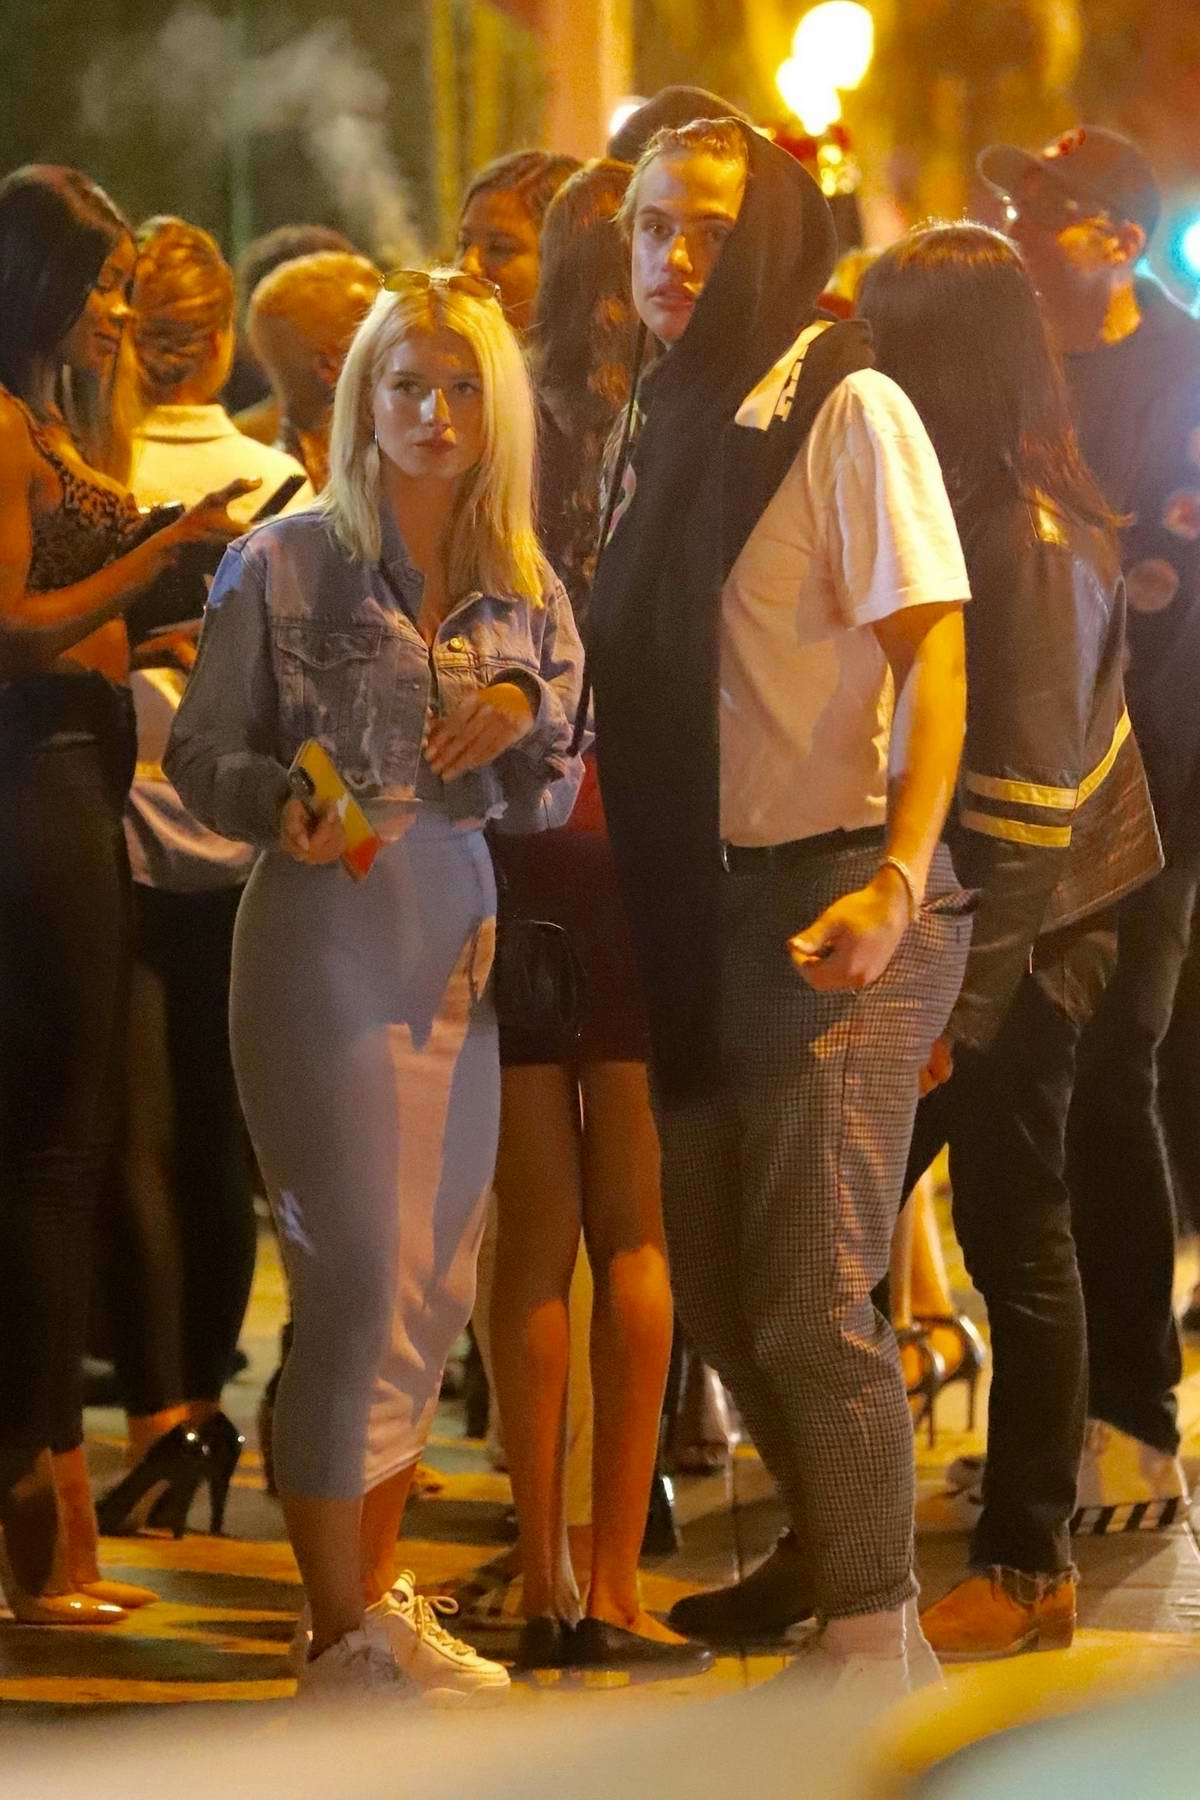 Lottie Moss gets cozy with Daniel Mickelson outside of Delilah nightclub in West Hollywood, Los Angeles